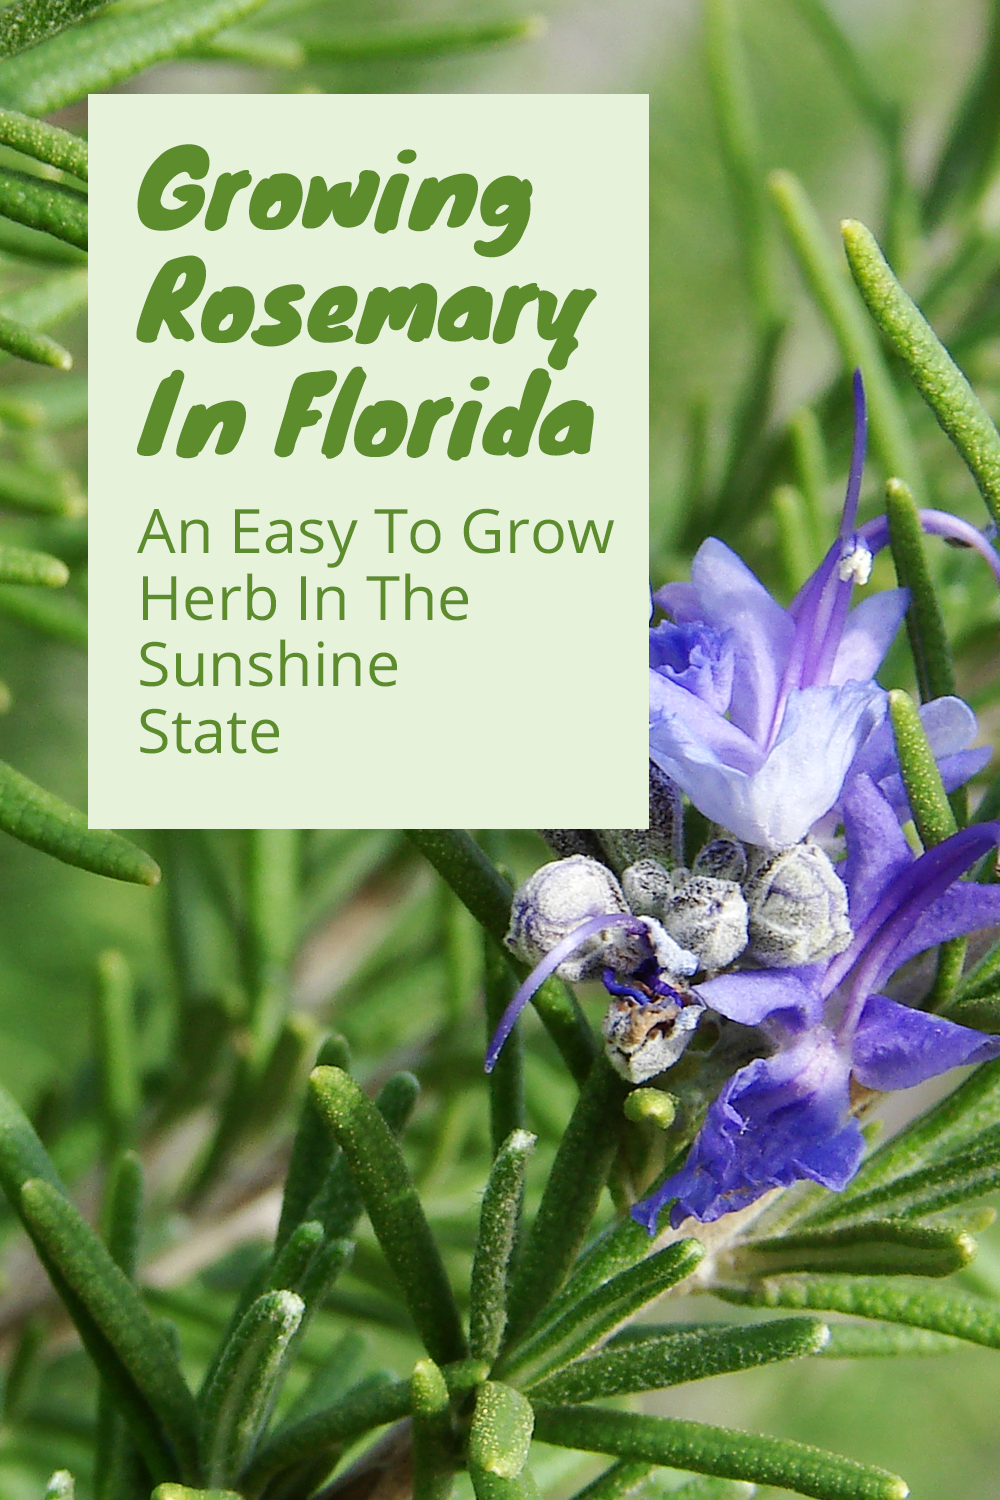 Growing Rosemary In Florida With Images Growing Rosemary